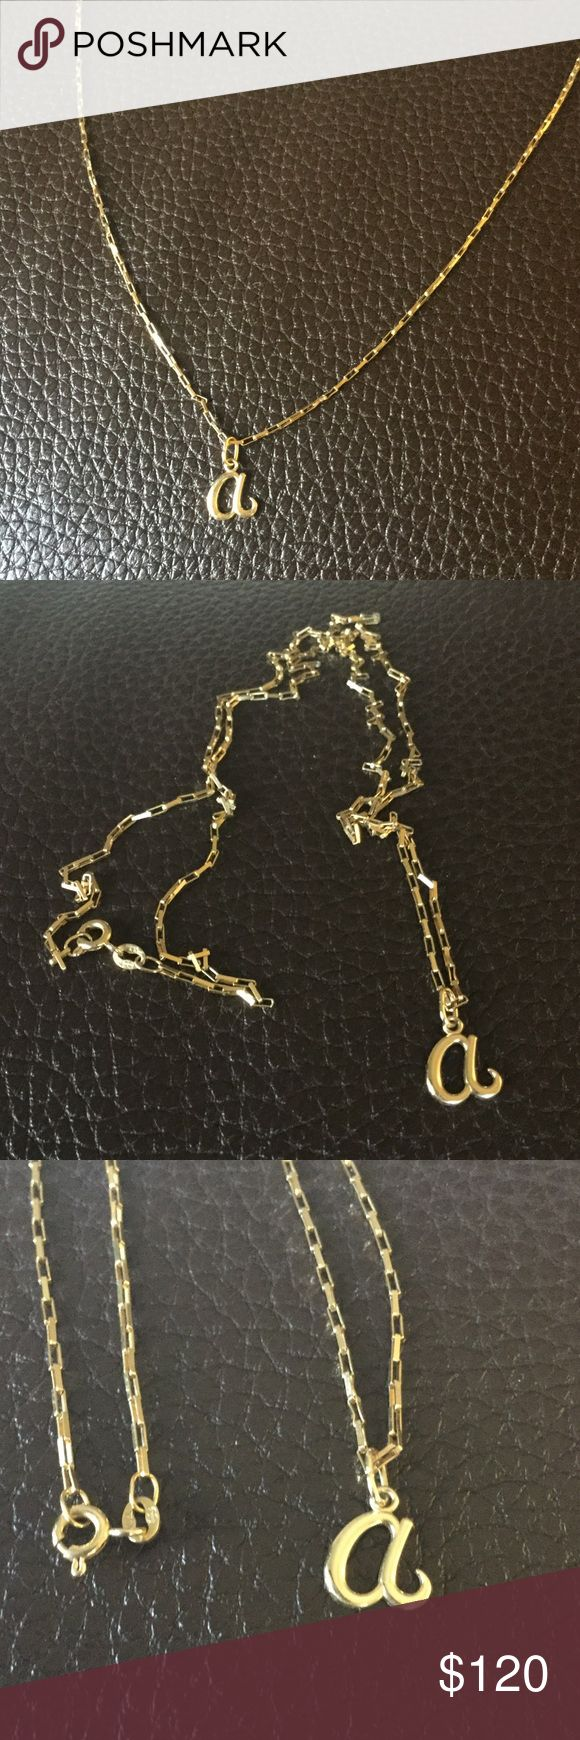 "14K Gold Chain Italian yellow gold chain.  24"" long.  Boxed links.  ""a"" pendant is not included, but if you're interested just ask. Jewelry Necklaces"